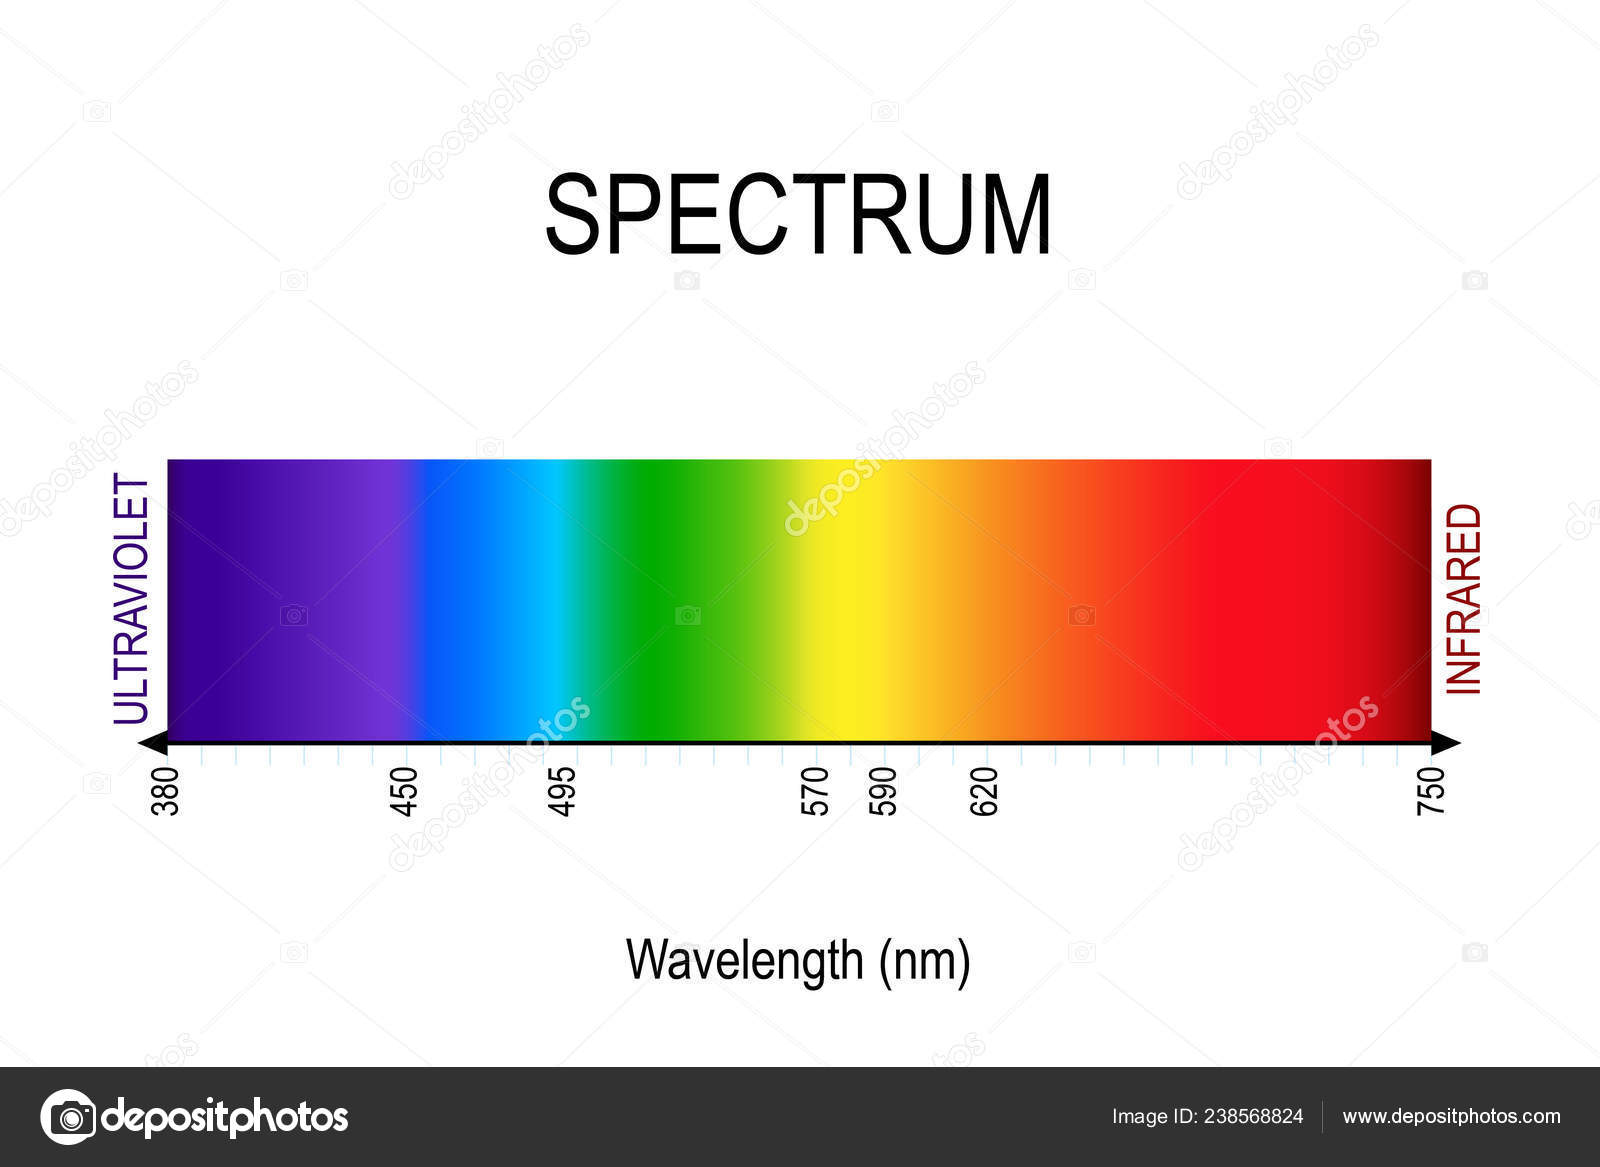 Spectrum Visible Light Infrared Ultraviolet